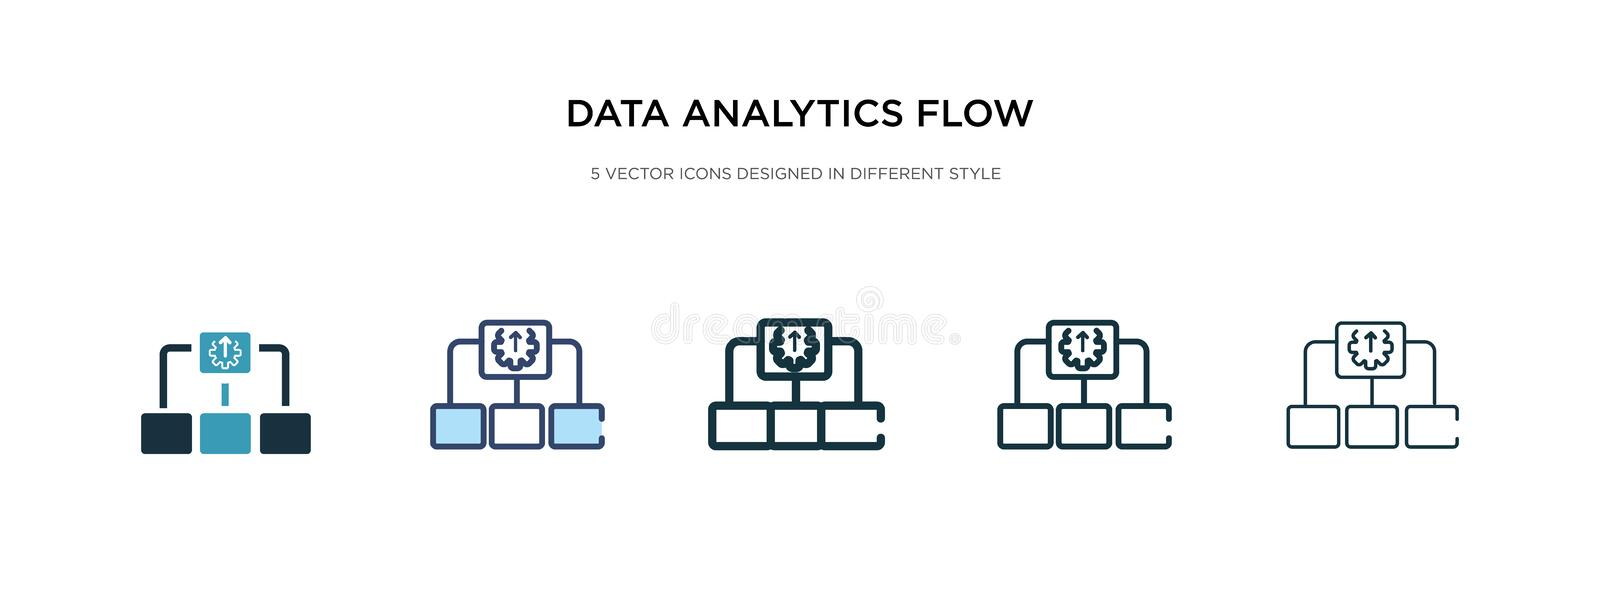 Data analytics flow chart icon in different style vector illustration. two colored and black data analytics flow chart vector. Icons designed in filled, outline royalty free illustration